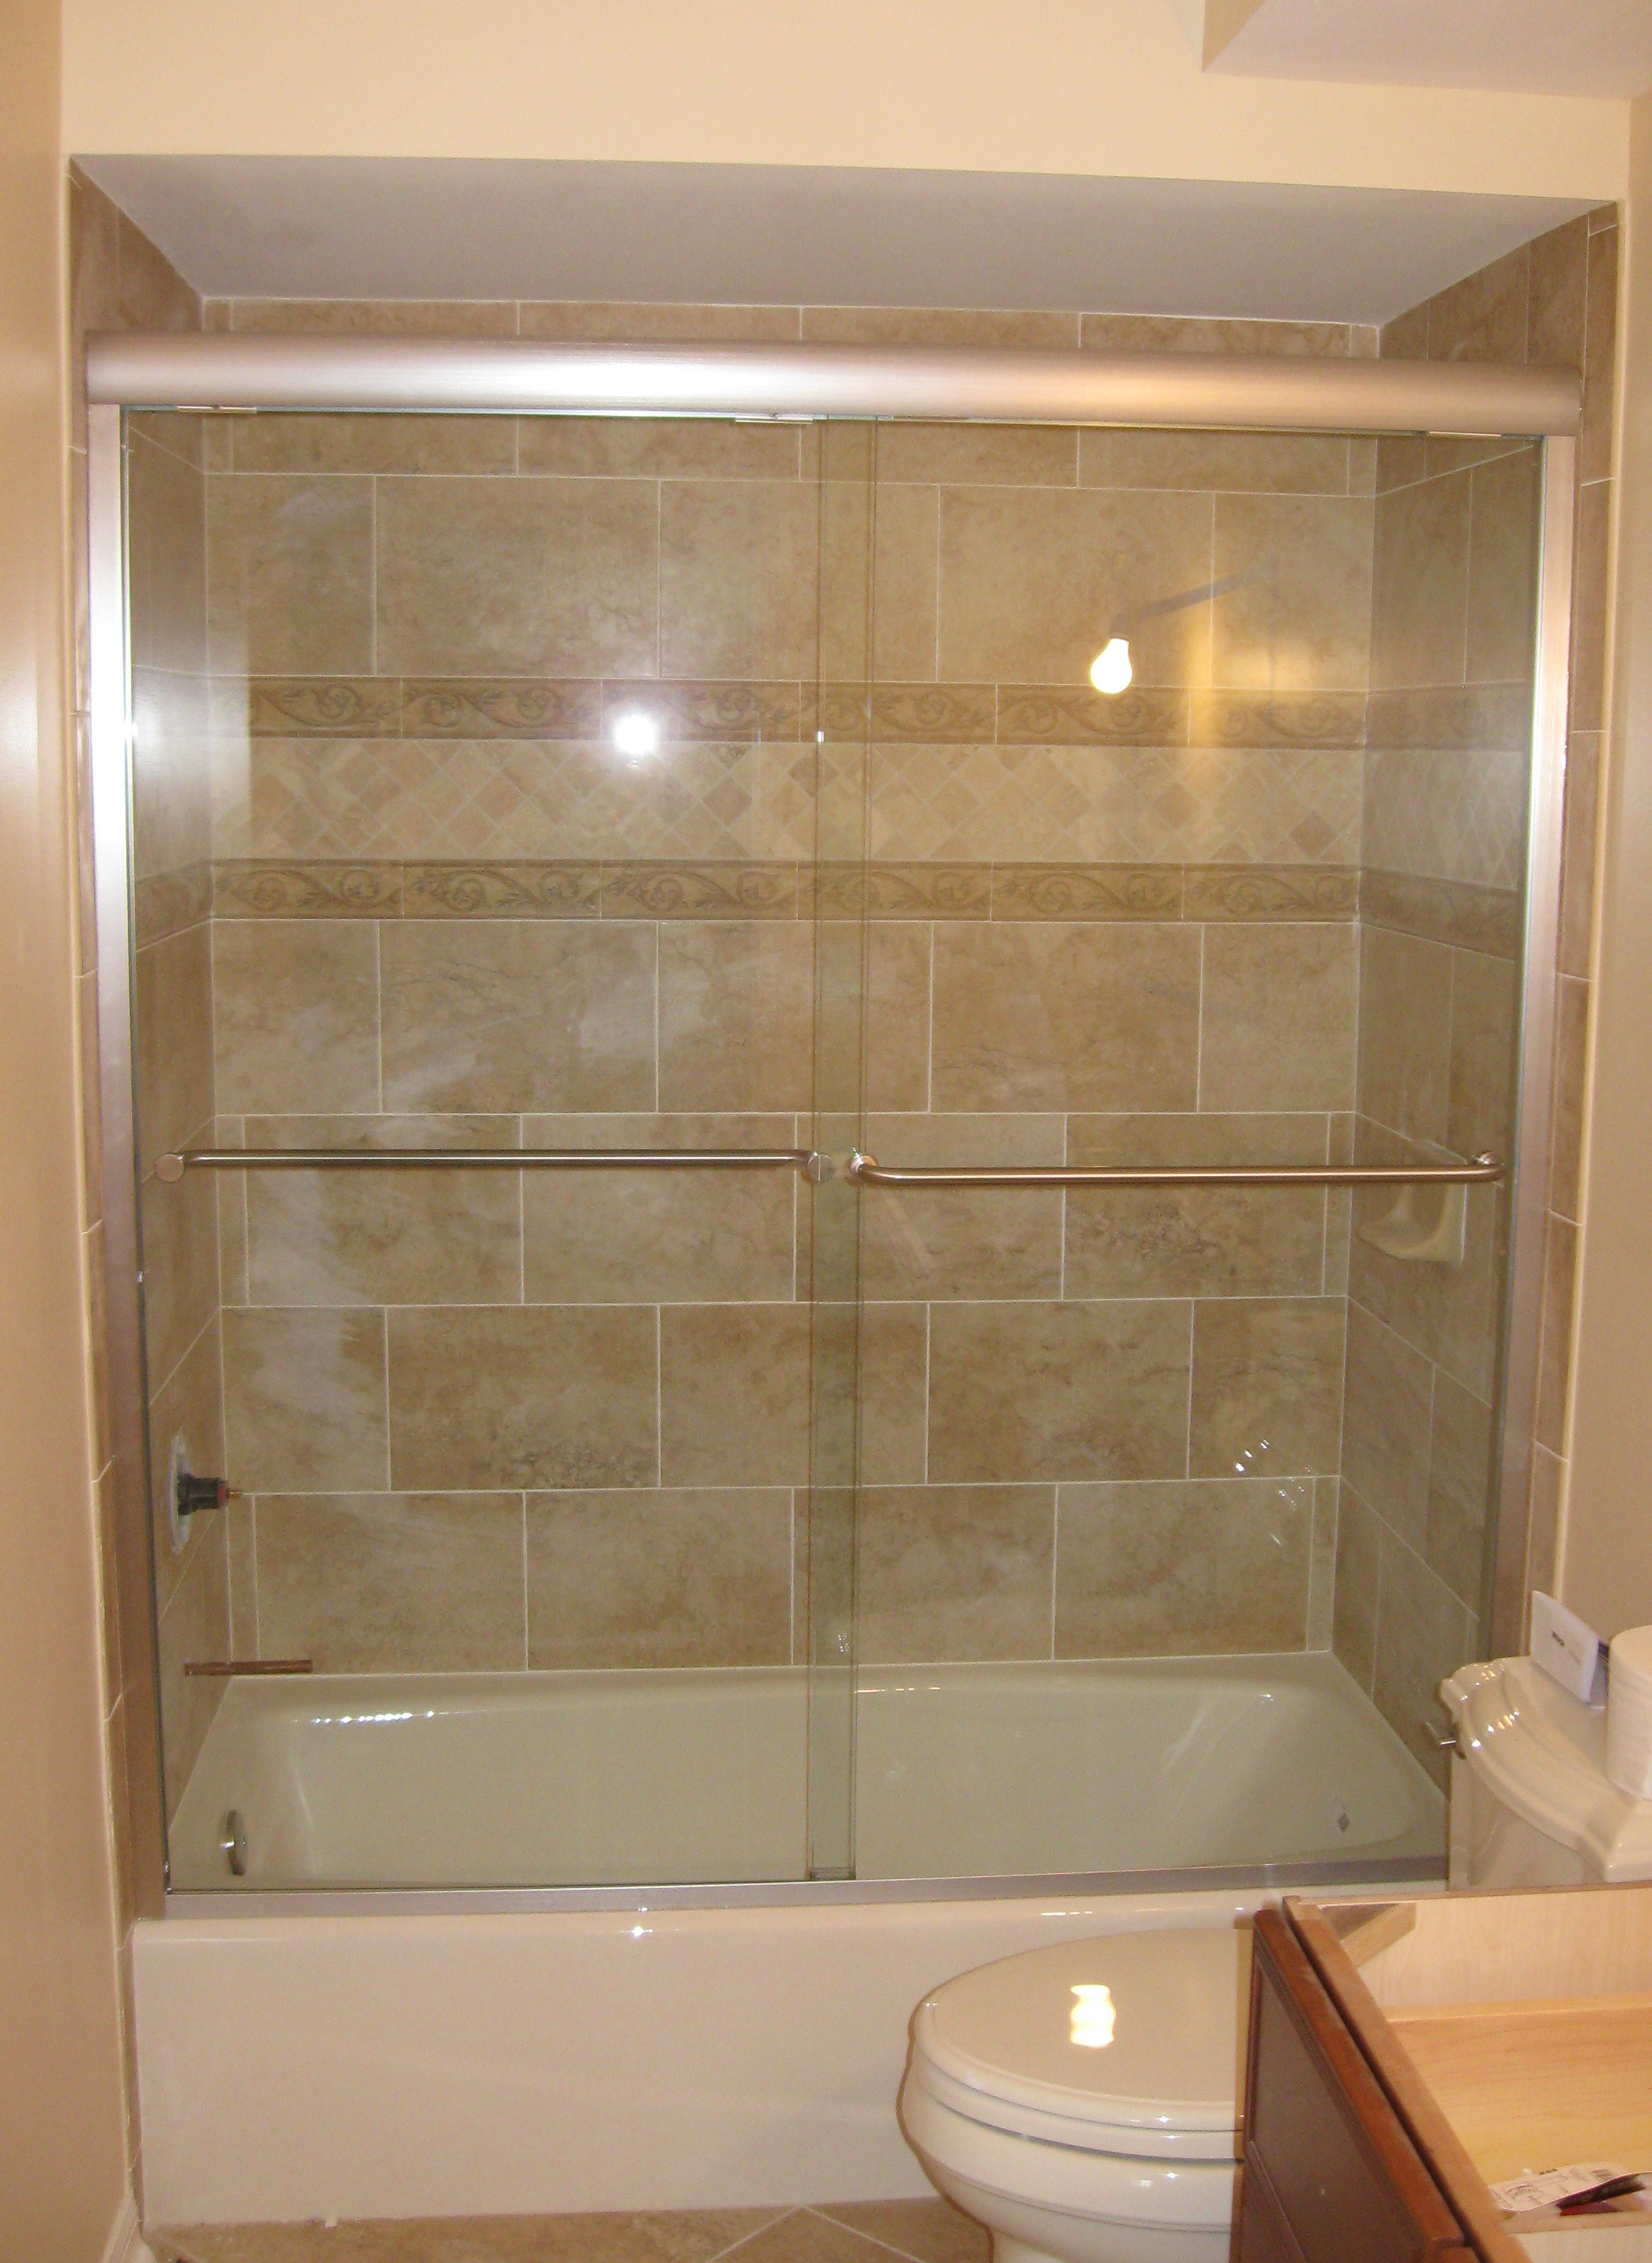 shower gc semi acero equalis return series door enclosures frameless vs tub framed